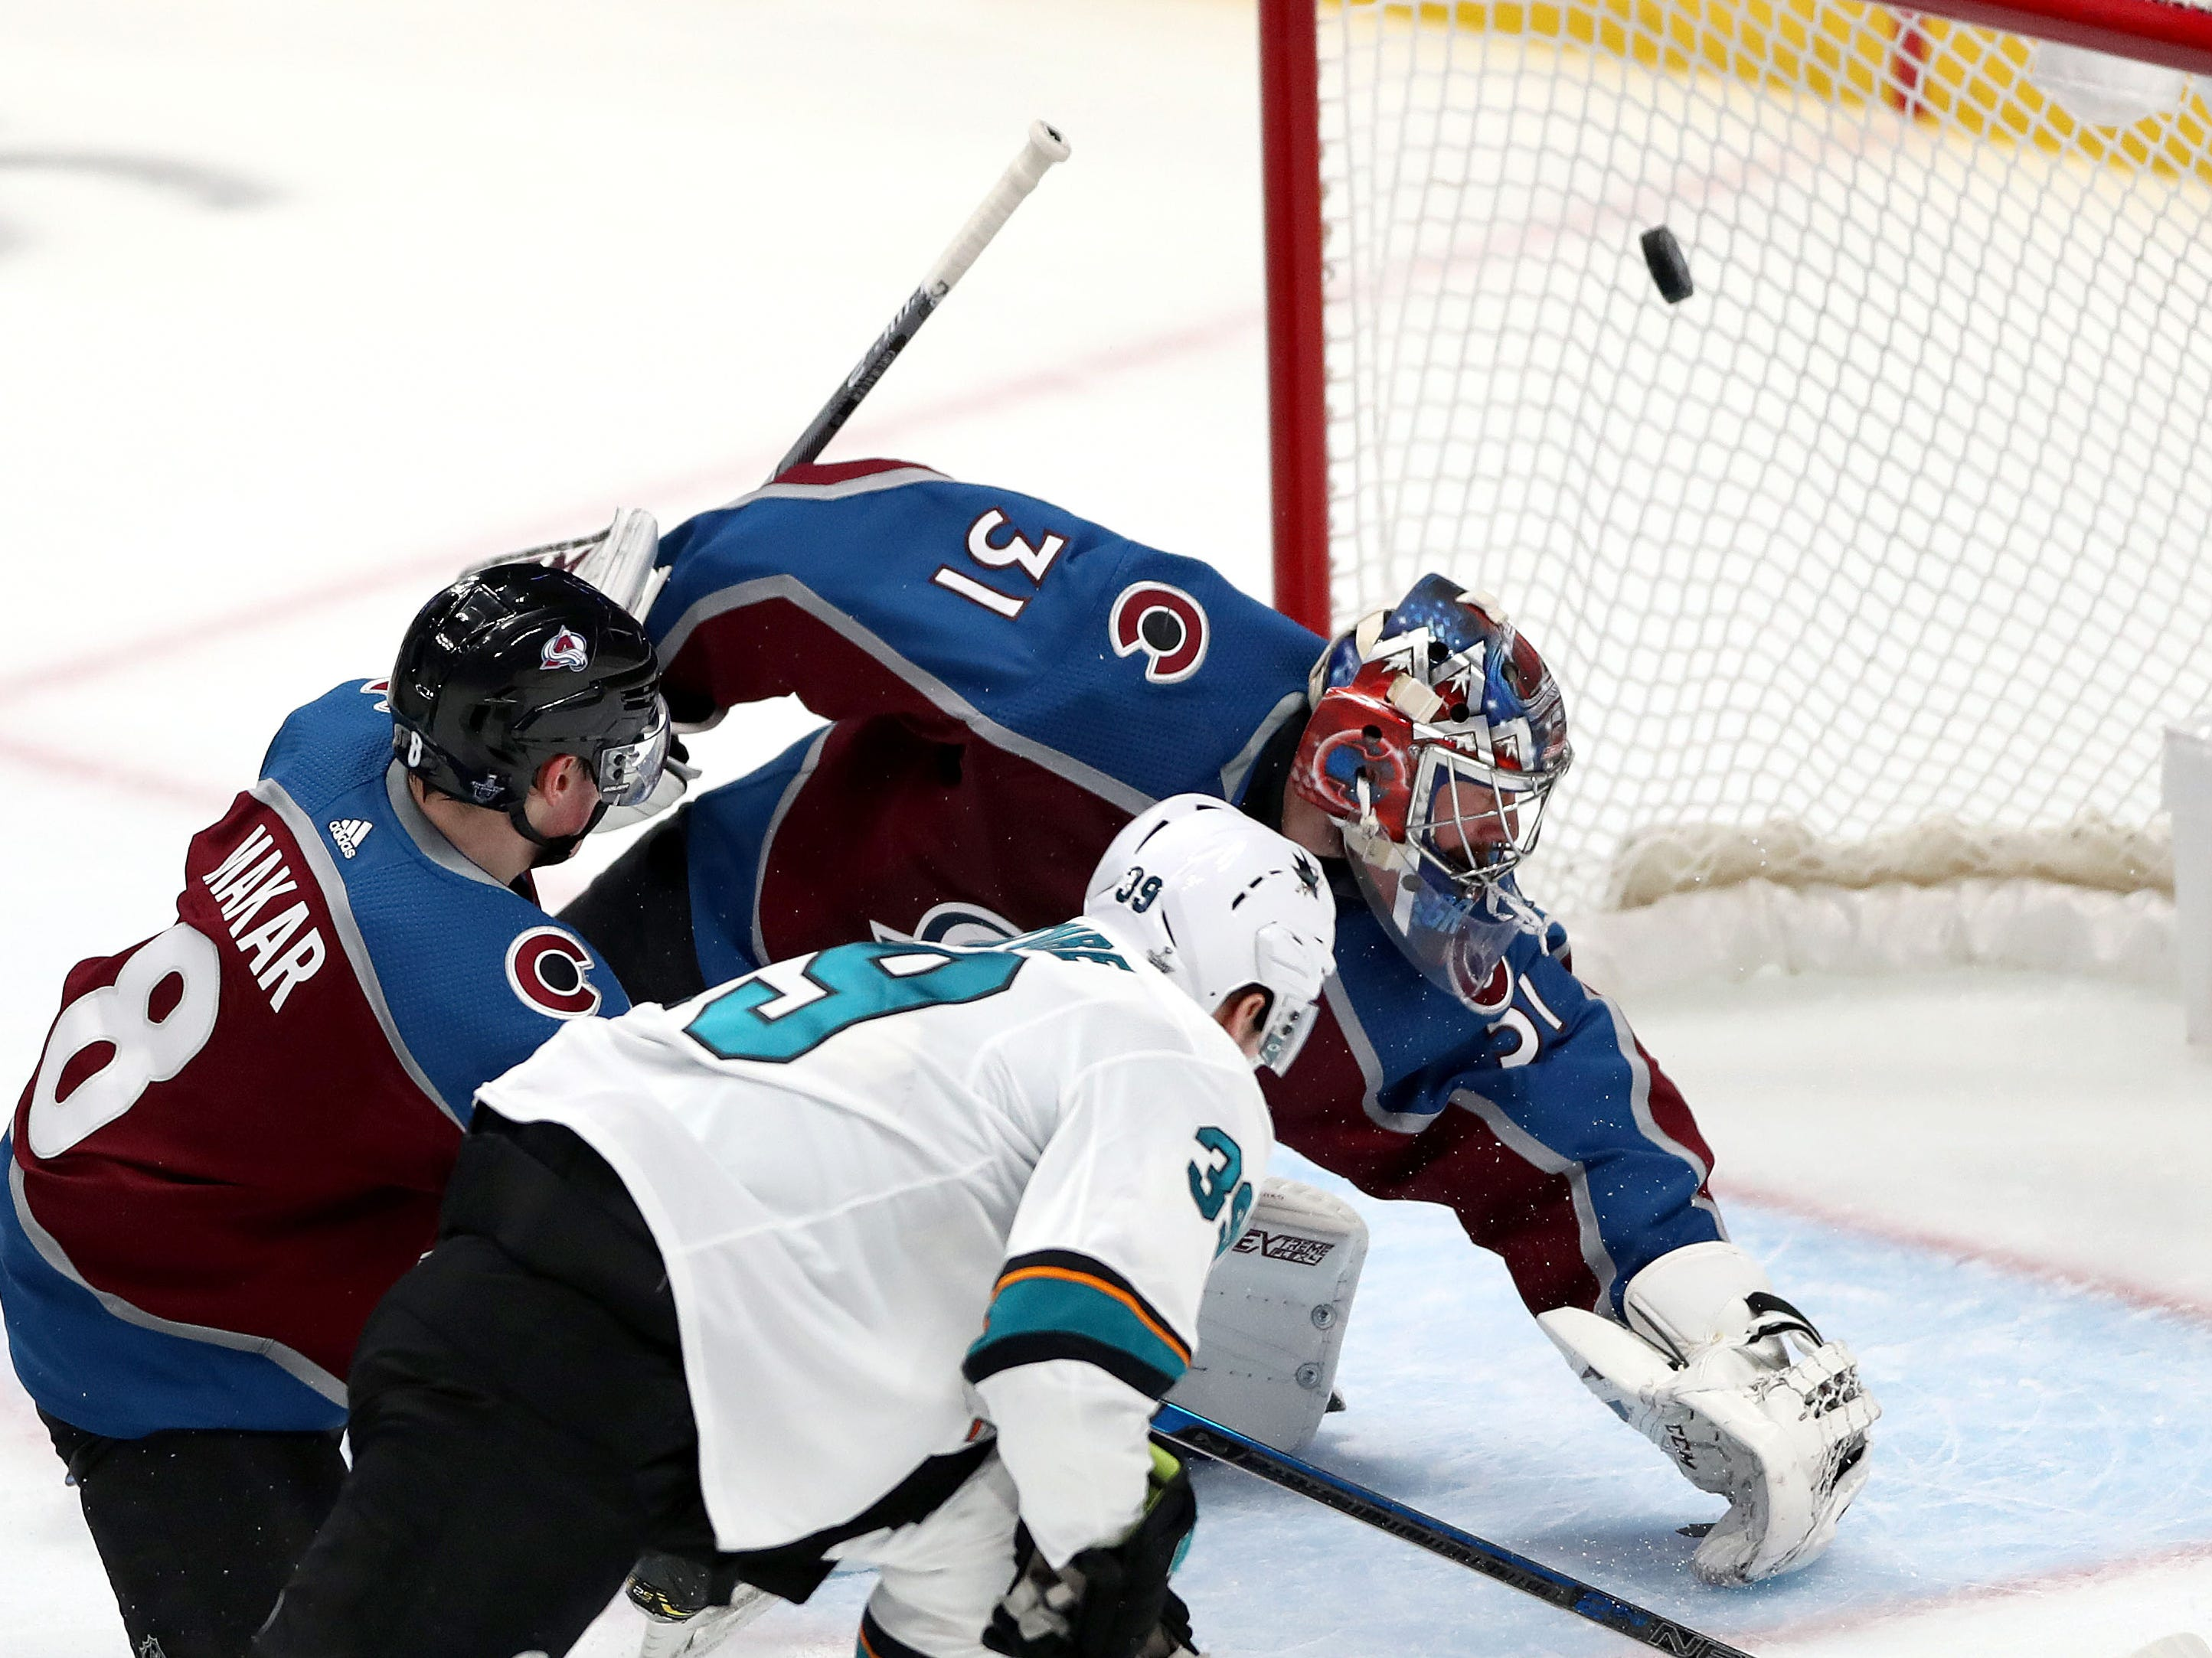 Second round: Sharks forward Logan Couture scores one of his three goals against the Avalanche in a 4-2 win in Game 3.